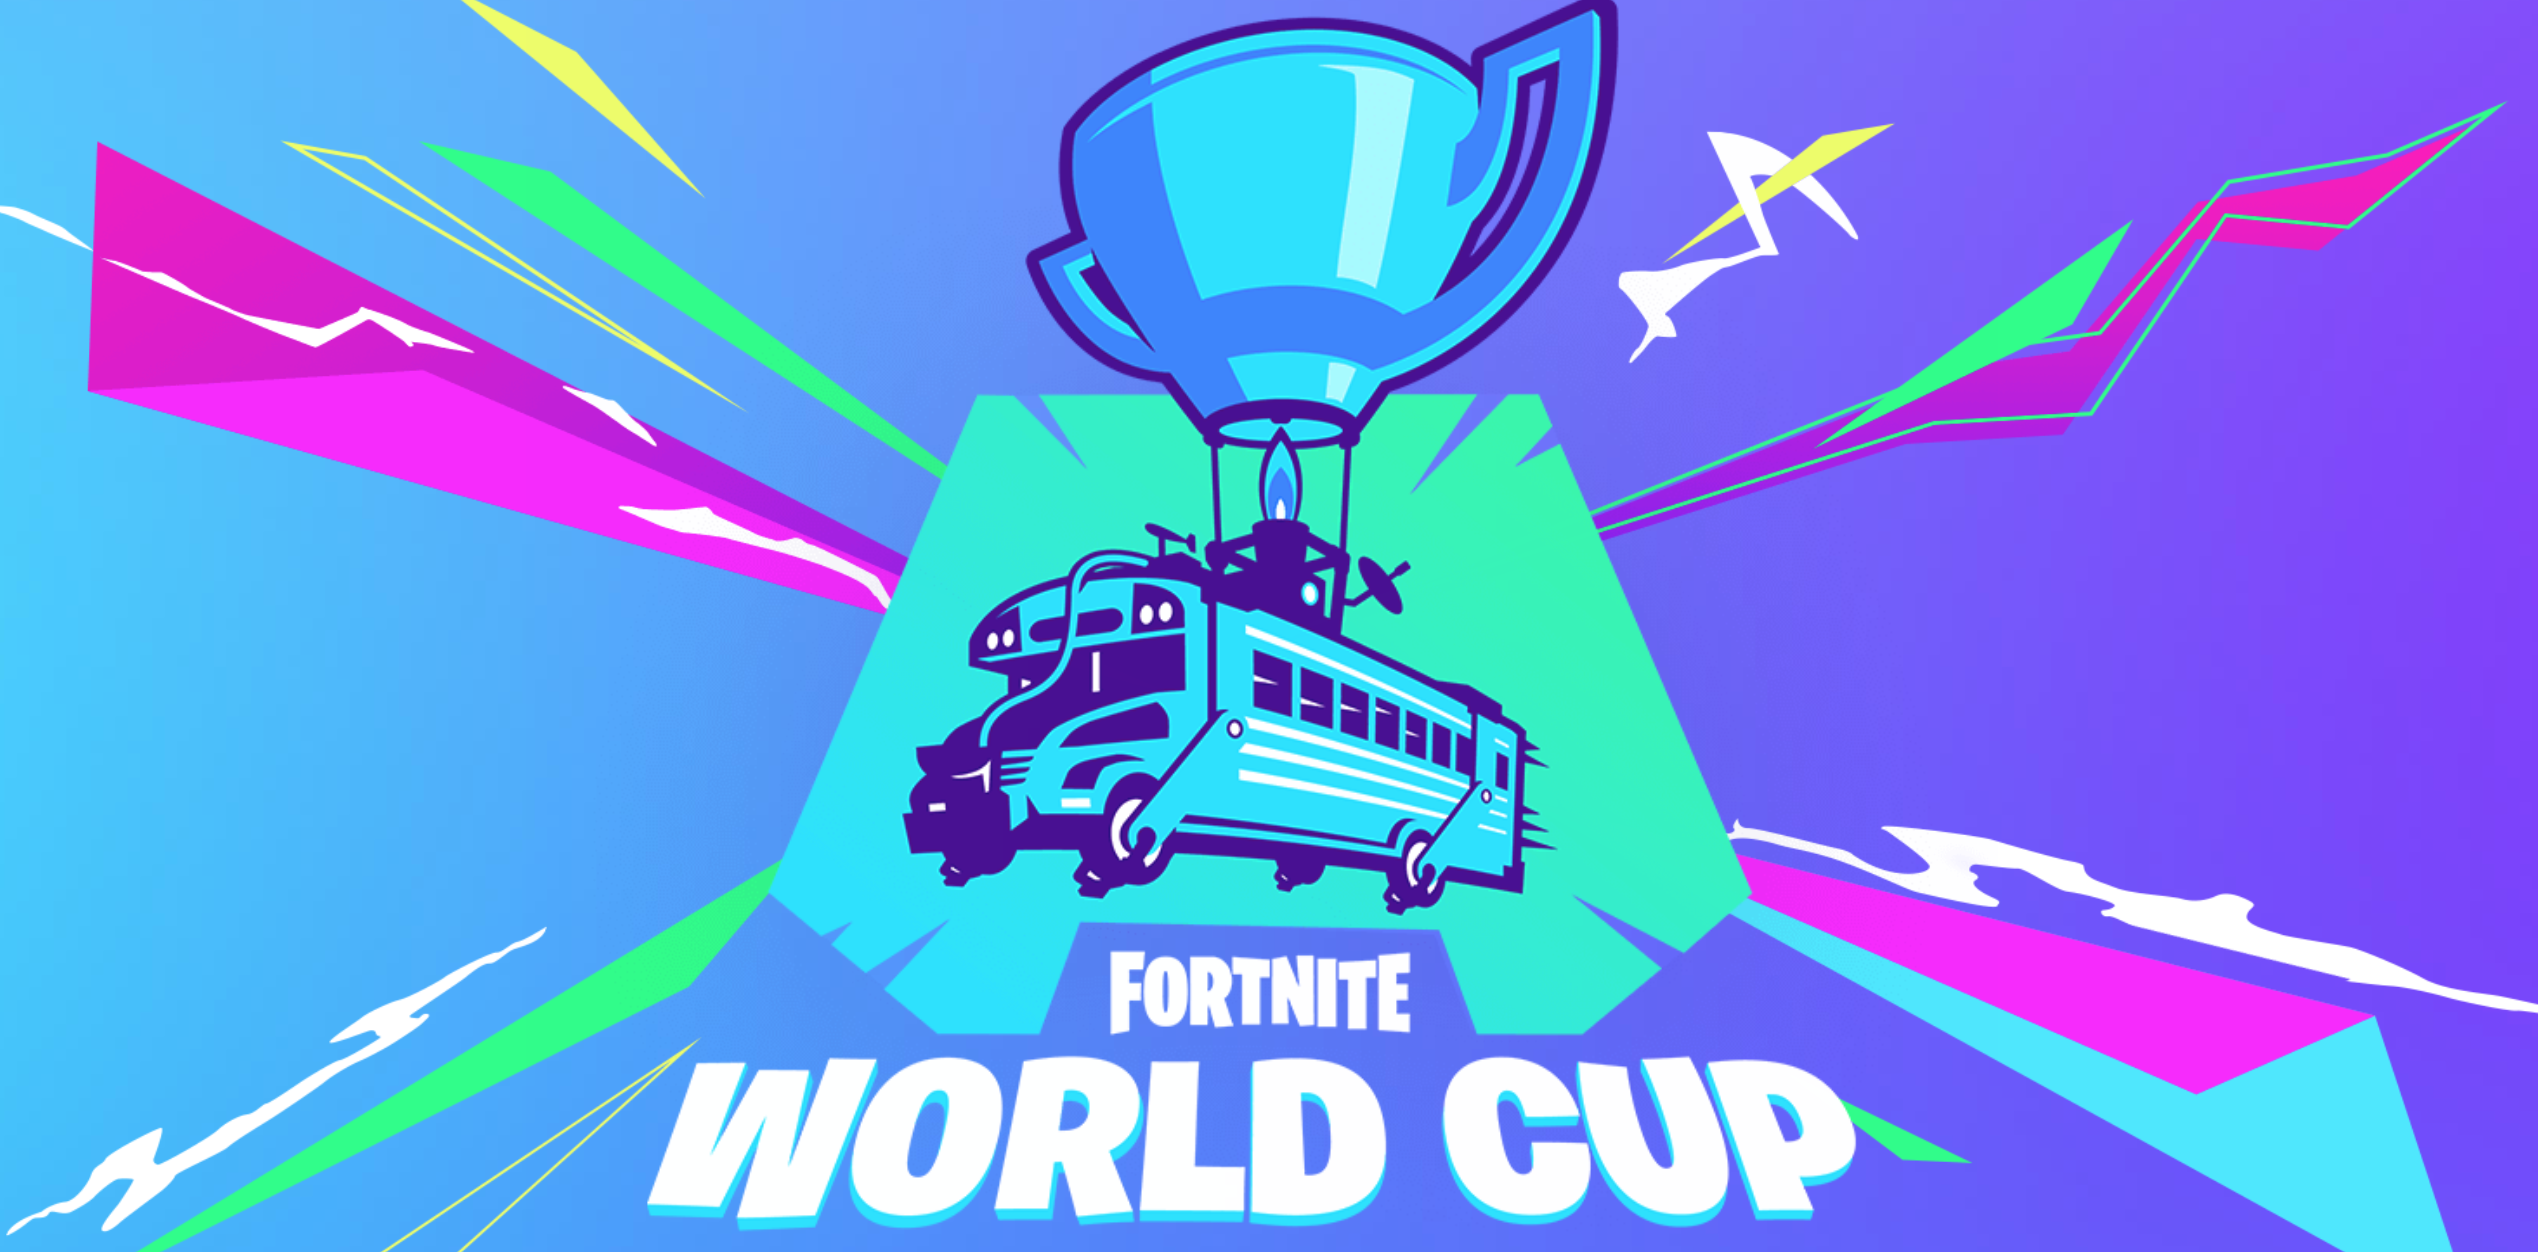 Epic Has Caught Over 1000 Fortnite World Cup Cheaters So Far